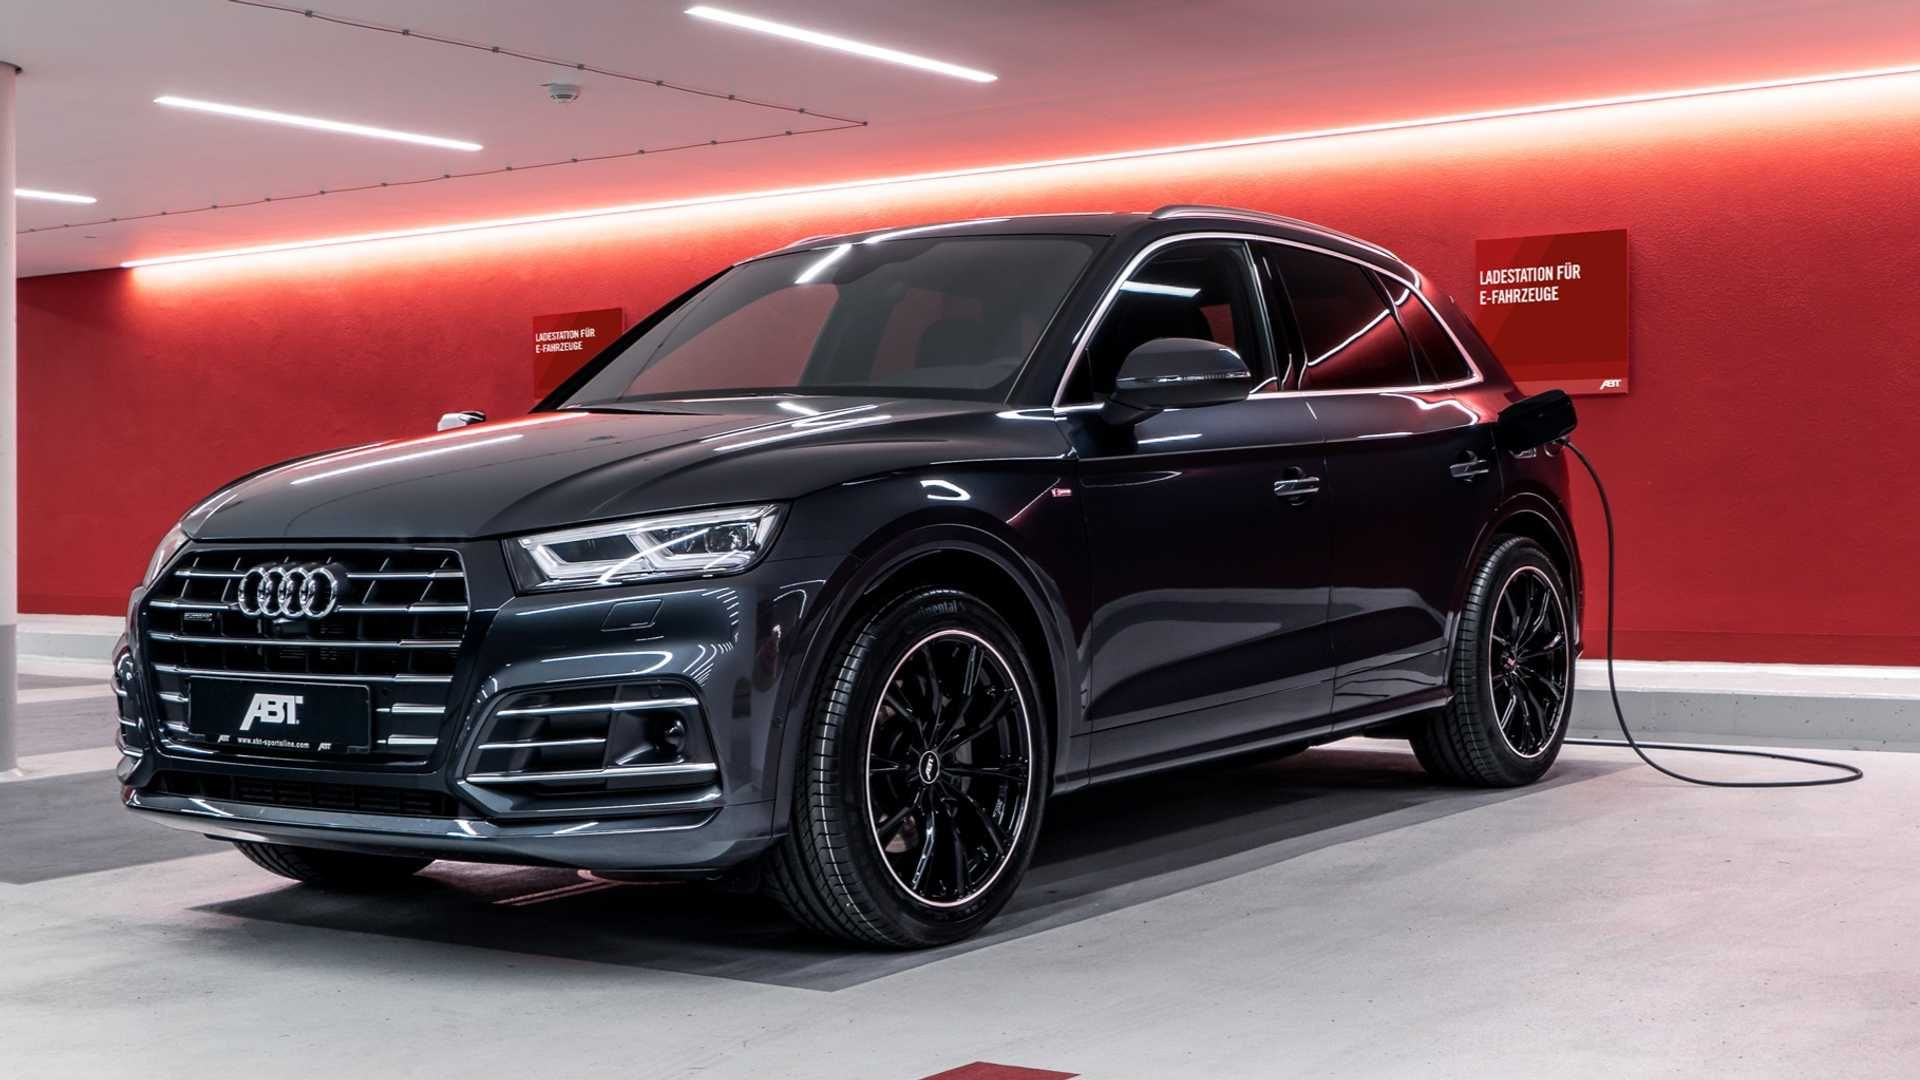 Audi Q5 55 Tfsie By Abt The First Abt Branded Hybrid You Can Buy Top Speed In 2020 Audi Q5 Audi Latest Cars